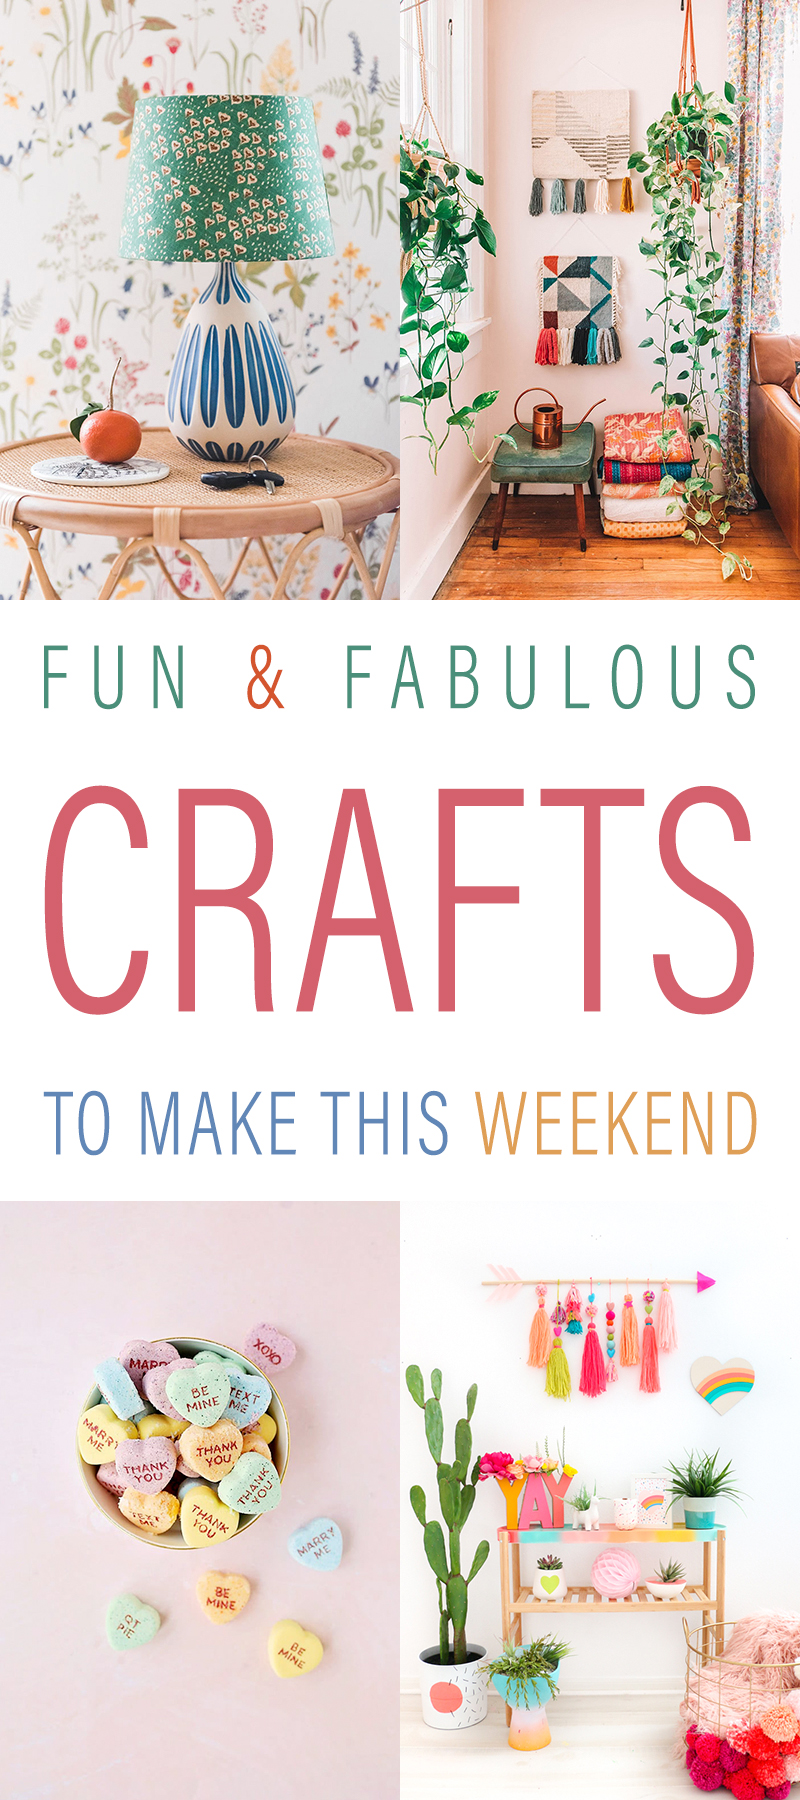 Fun and Fabulous Crafts To Make This Weekend are waiting for you over at The Cottage Market. These projects are fun... colorful and imaginative! Be Inspired